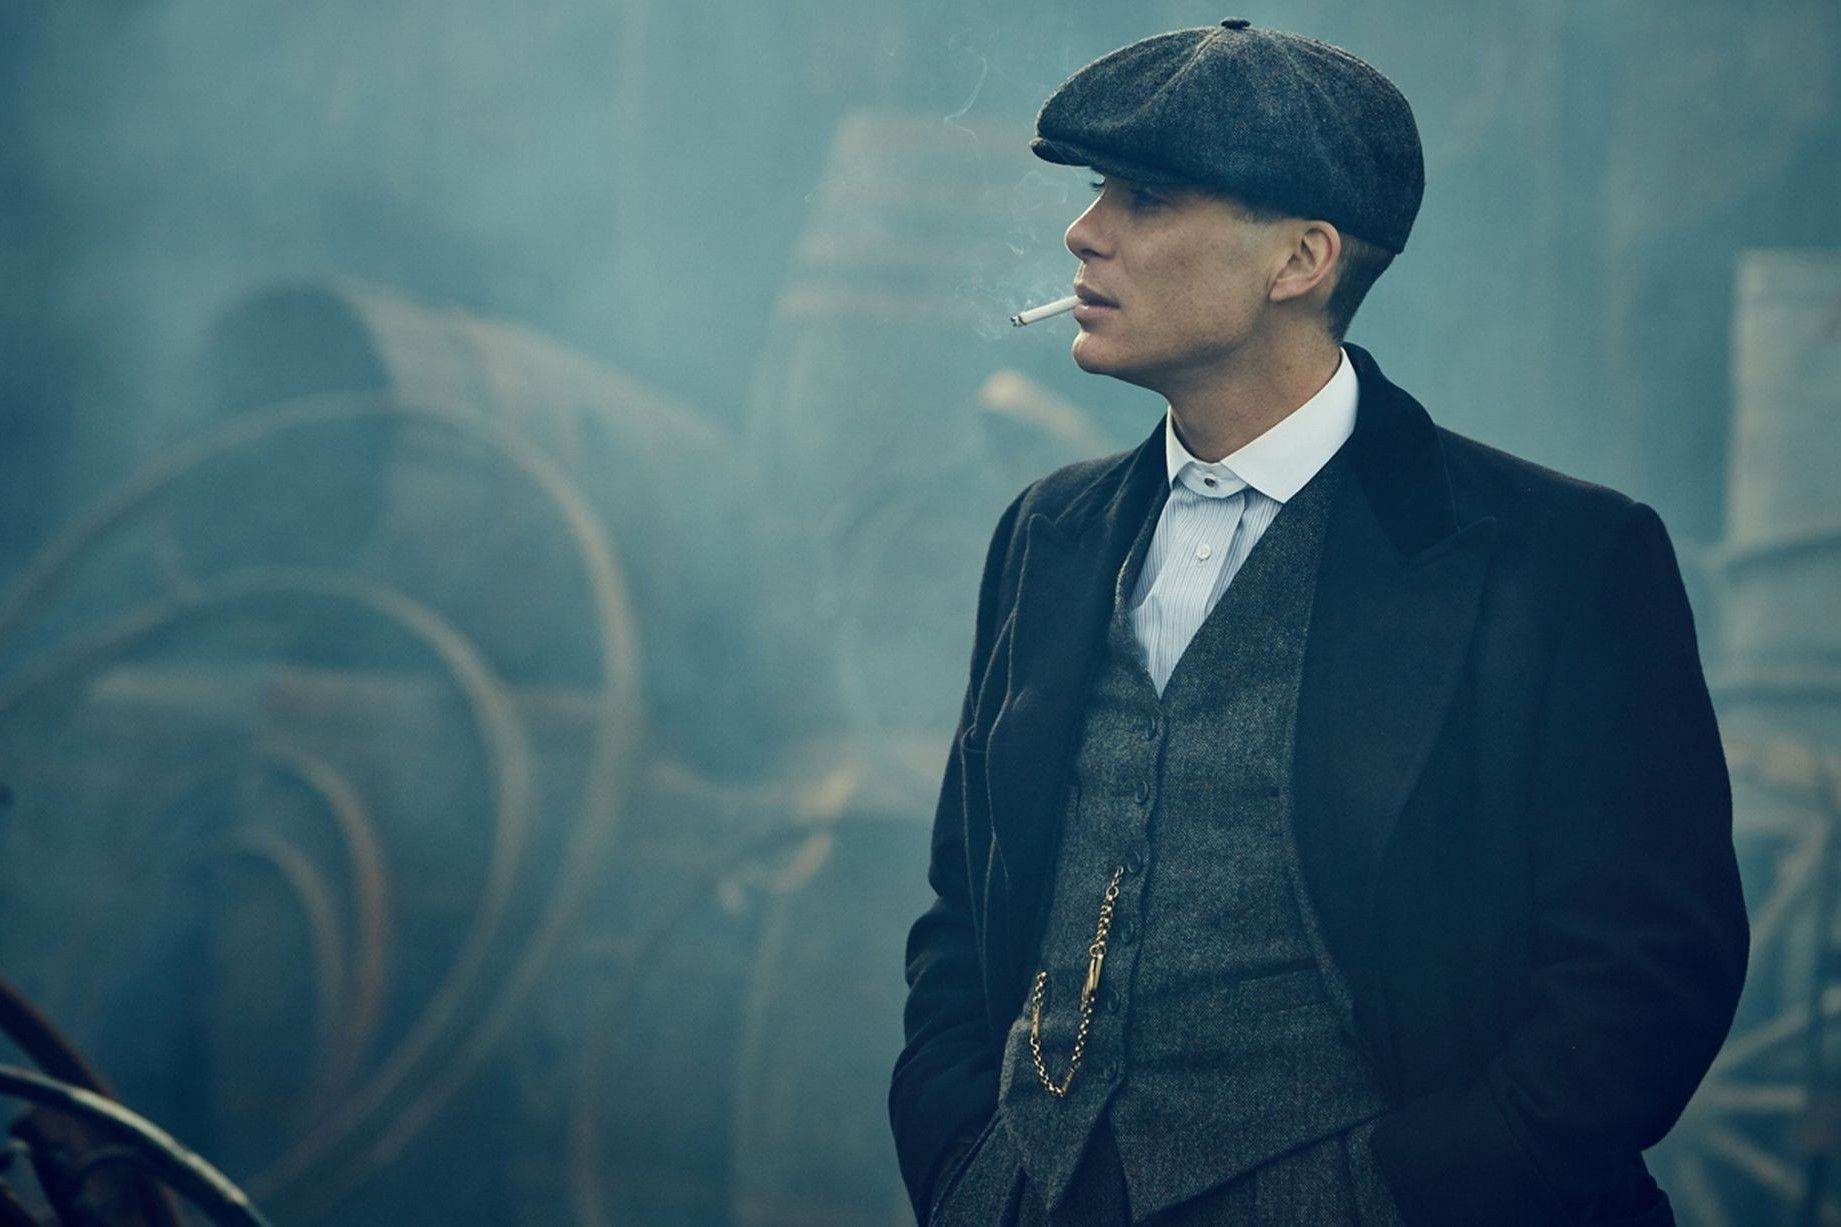 Peaky Blinders Wallpapers Peaky Blinders Wallpaper Peaky Blinders Mafia Wallpaper